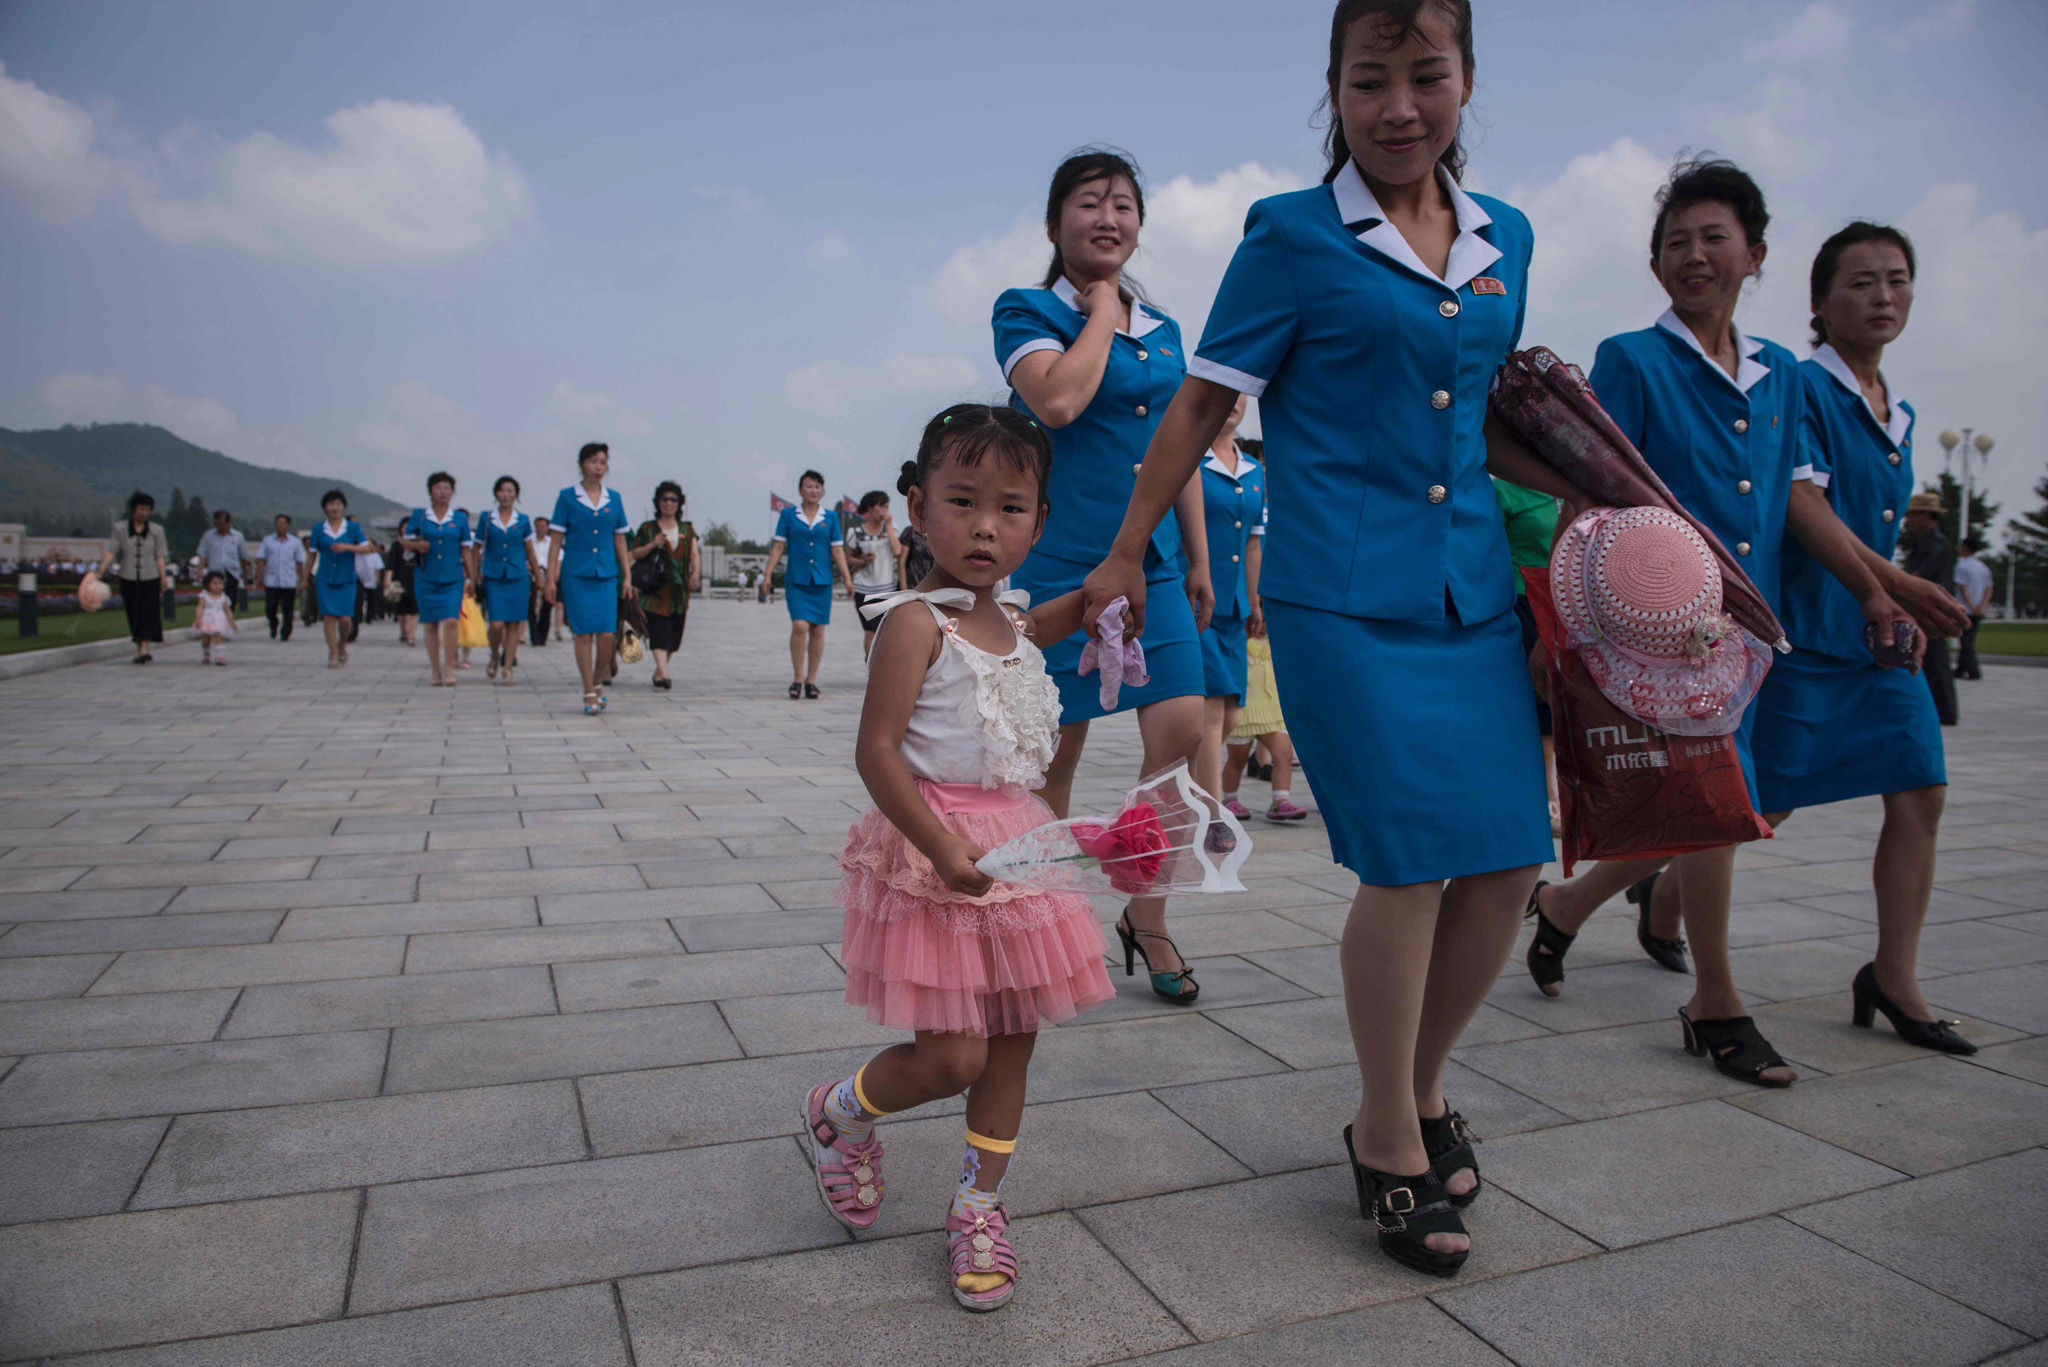 A group of North Korean workers and a child walk to pay their respects to late North Korean leader Kim Il-Sung on the anniversary of his death, outside the Kumsusan Palace of the Sun mausoleum in Pyongyang